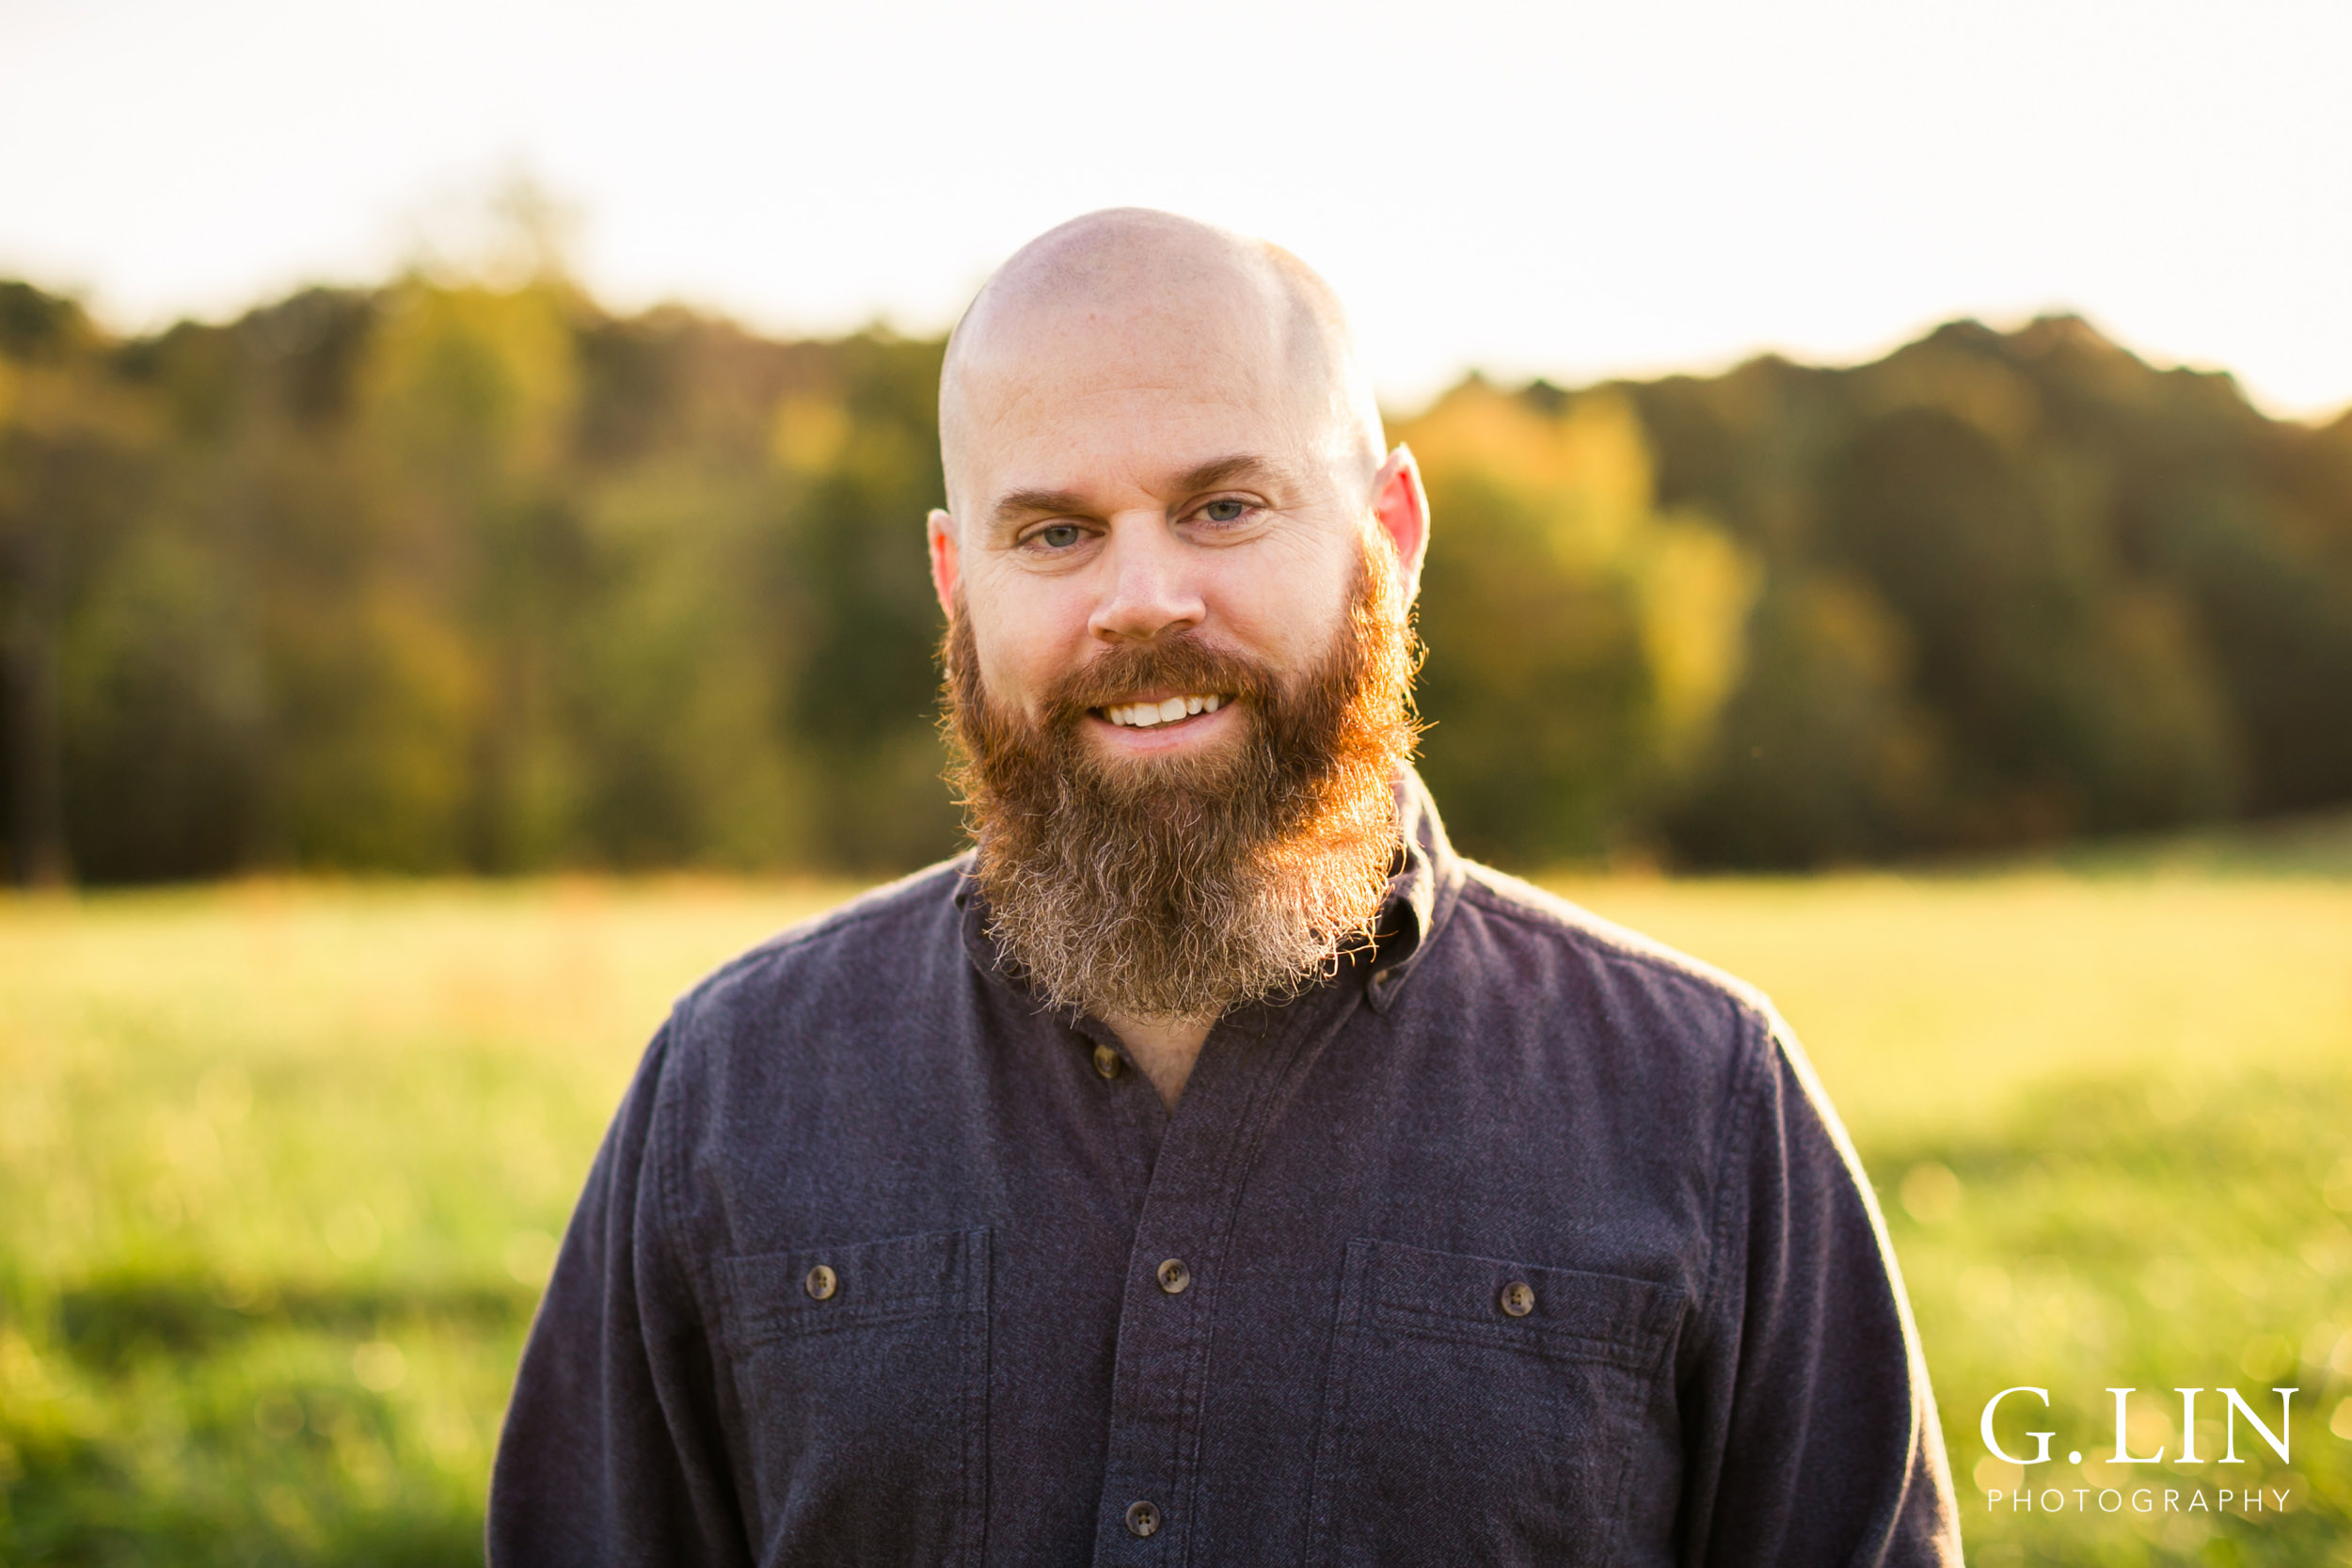 Good head shot of man in open field | Raleigh Family Photographer | G. Lin Photography